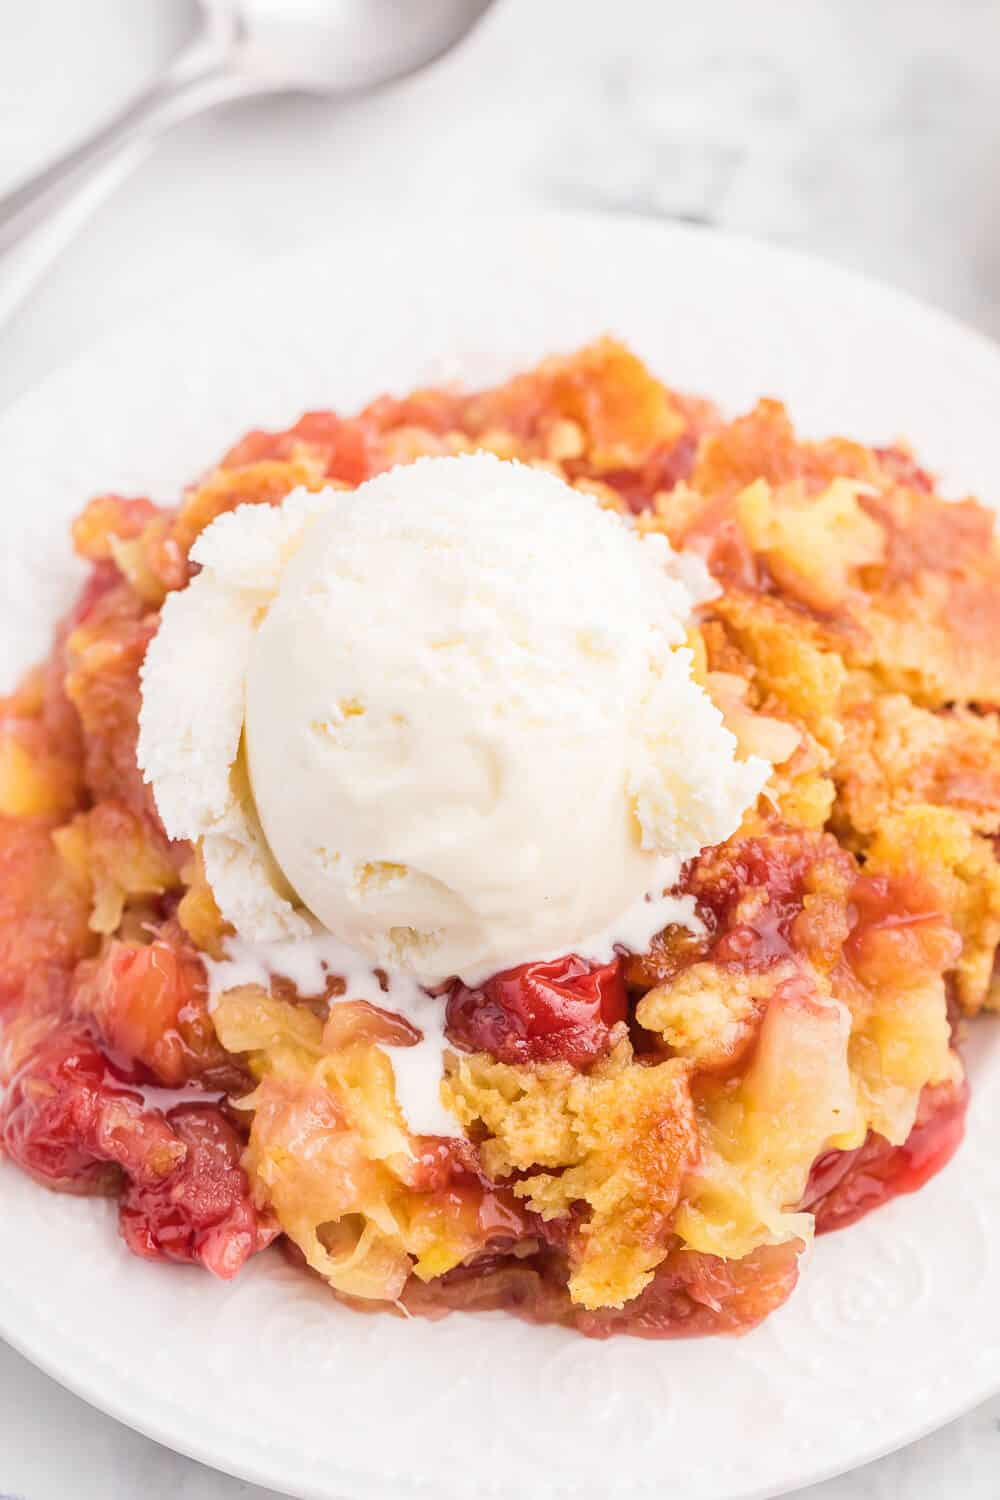 Cherry Pineapple Dump Cake Recipe - Made in 1 pan and only 4 ingredients in this quick and easy dessert recipe. Short prep time and no mixing! Perfect for potlucks and cookouts.